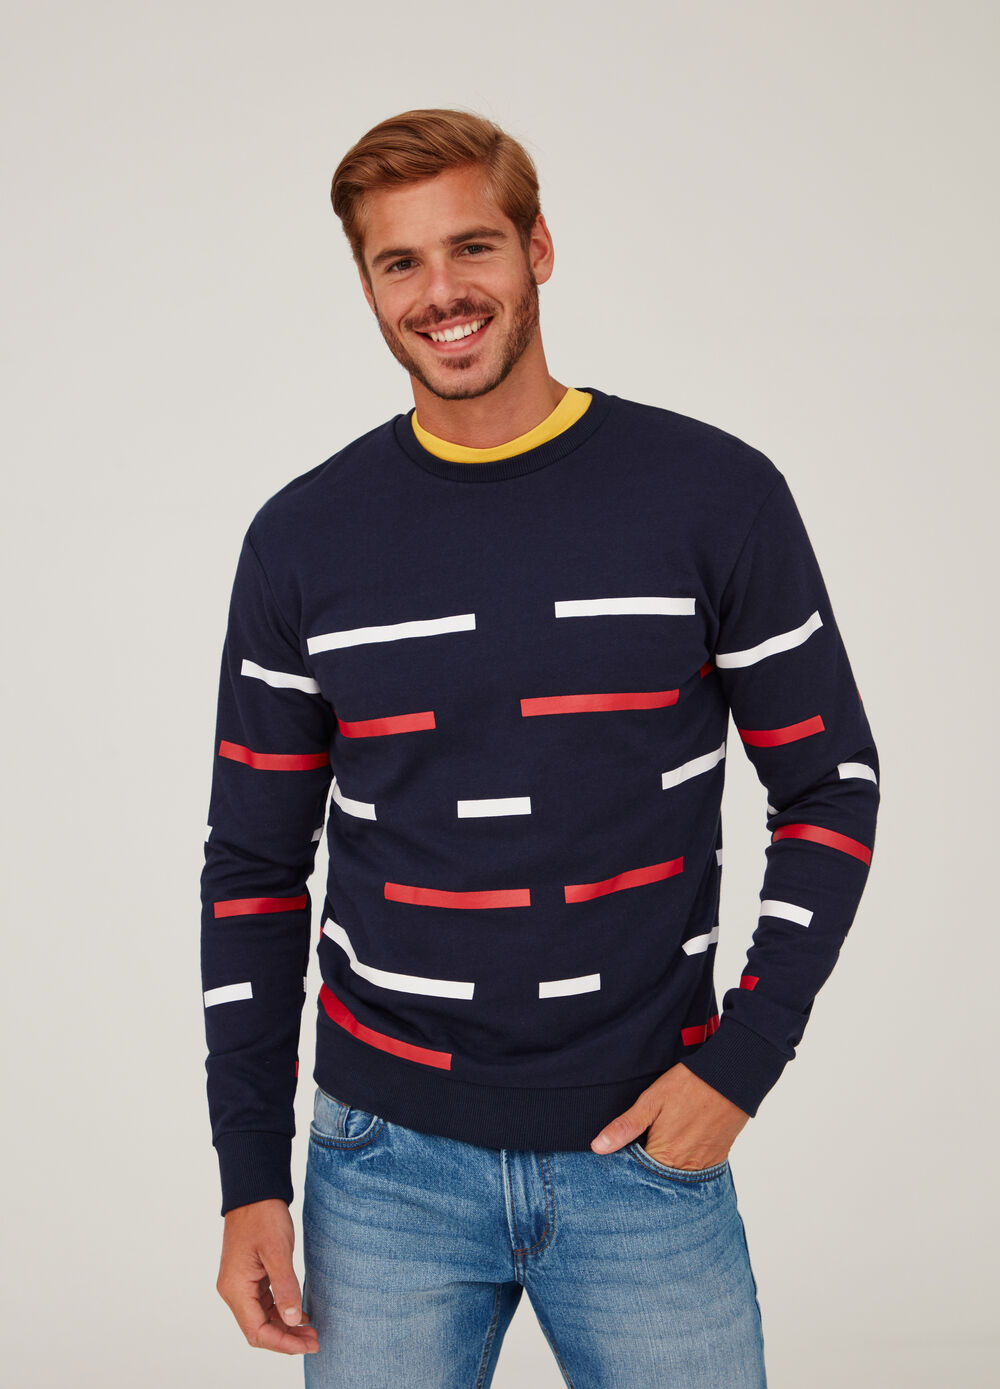 Sweatshirt with geometric pattern and round neck